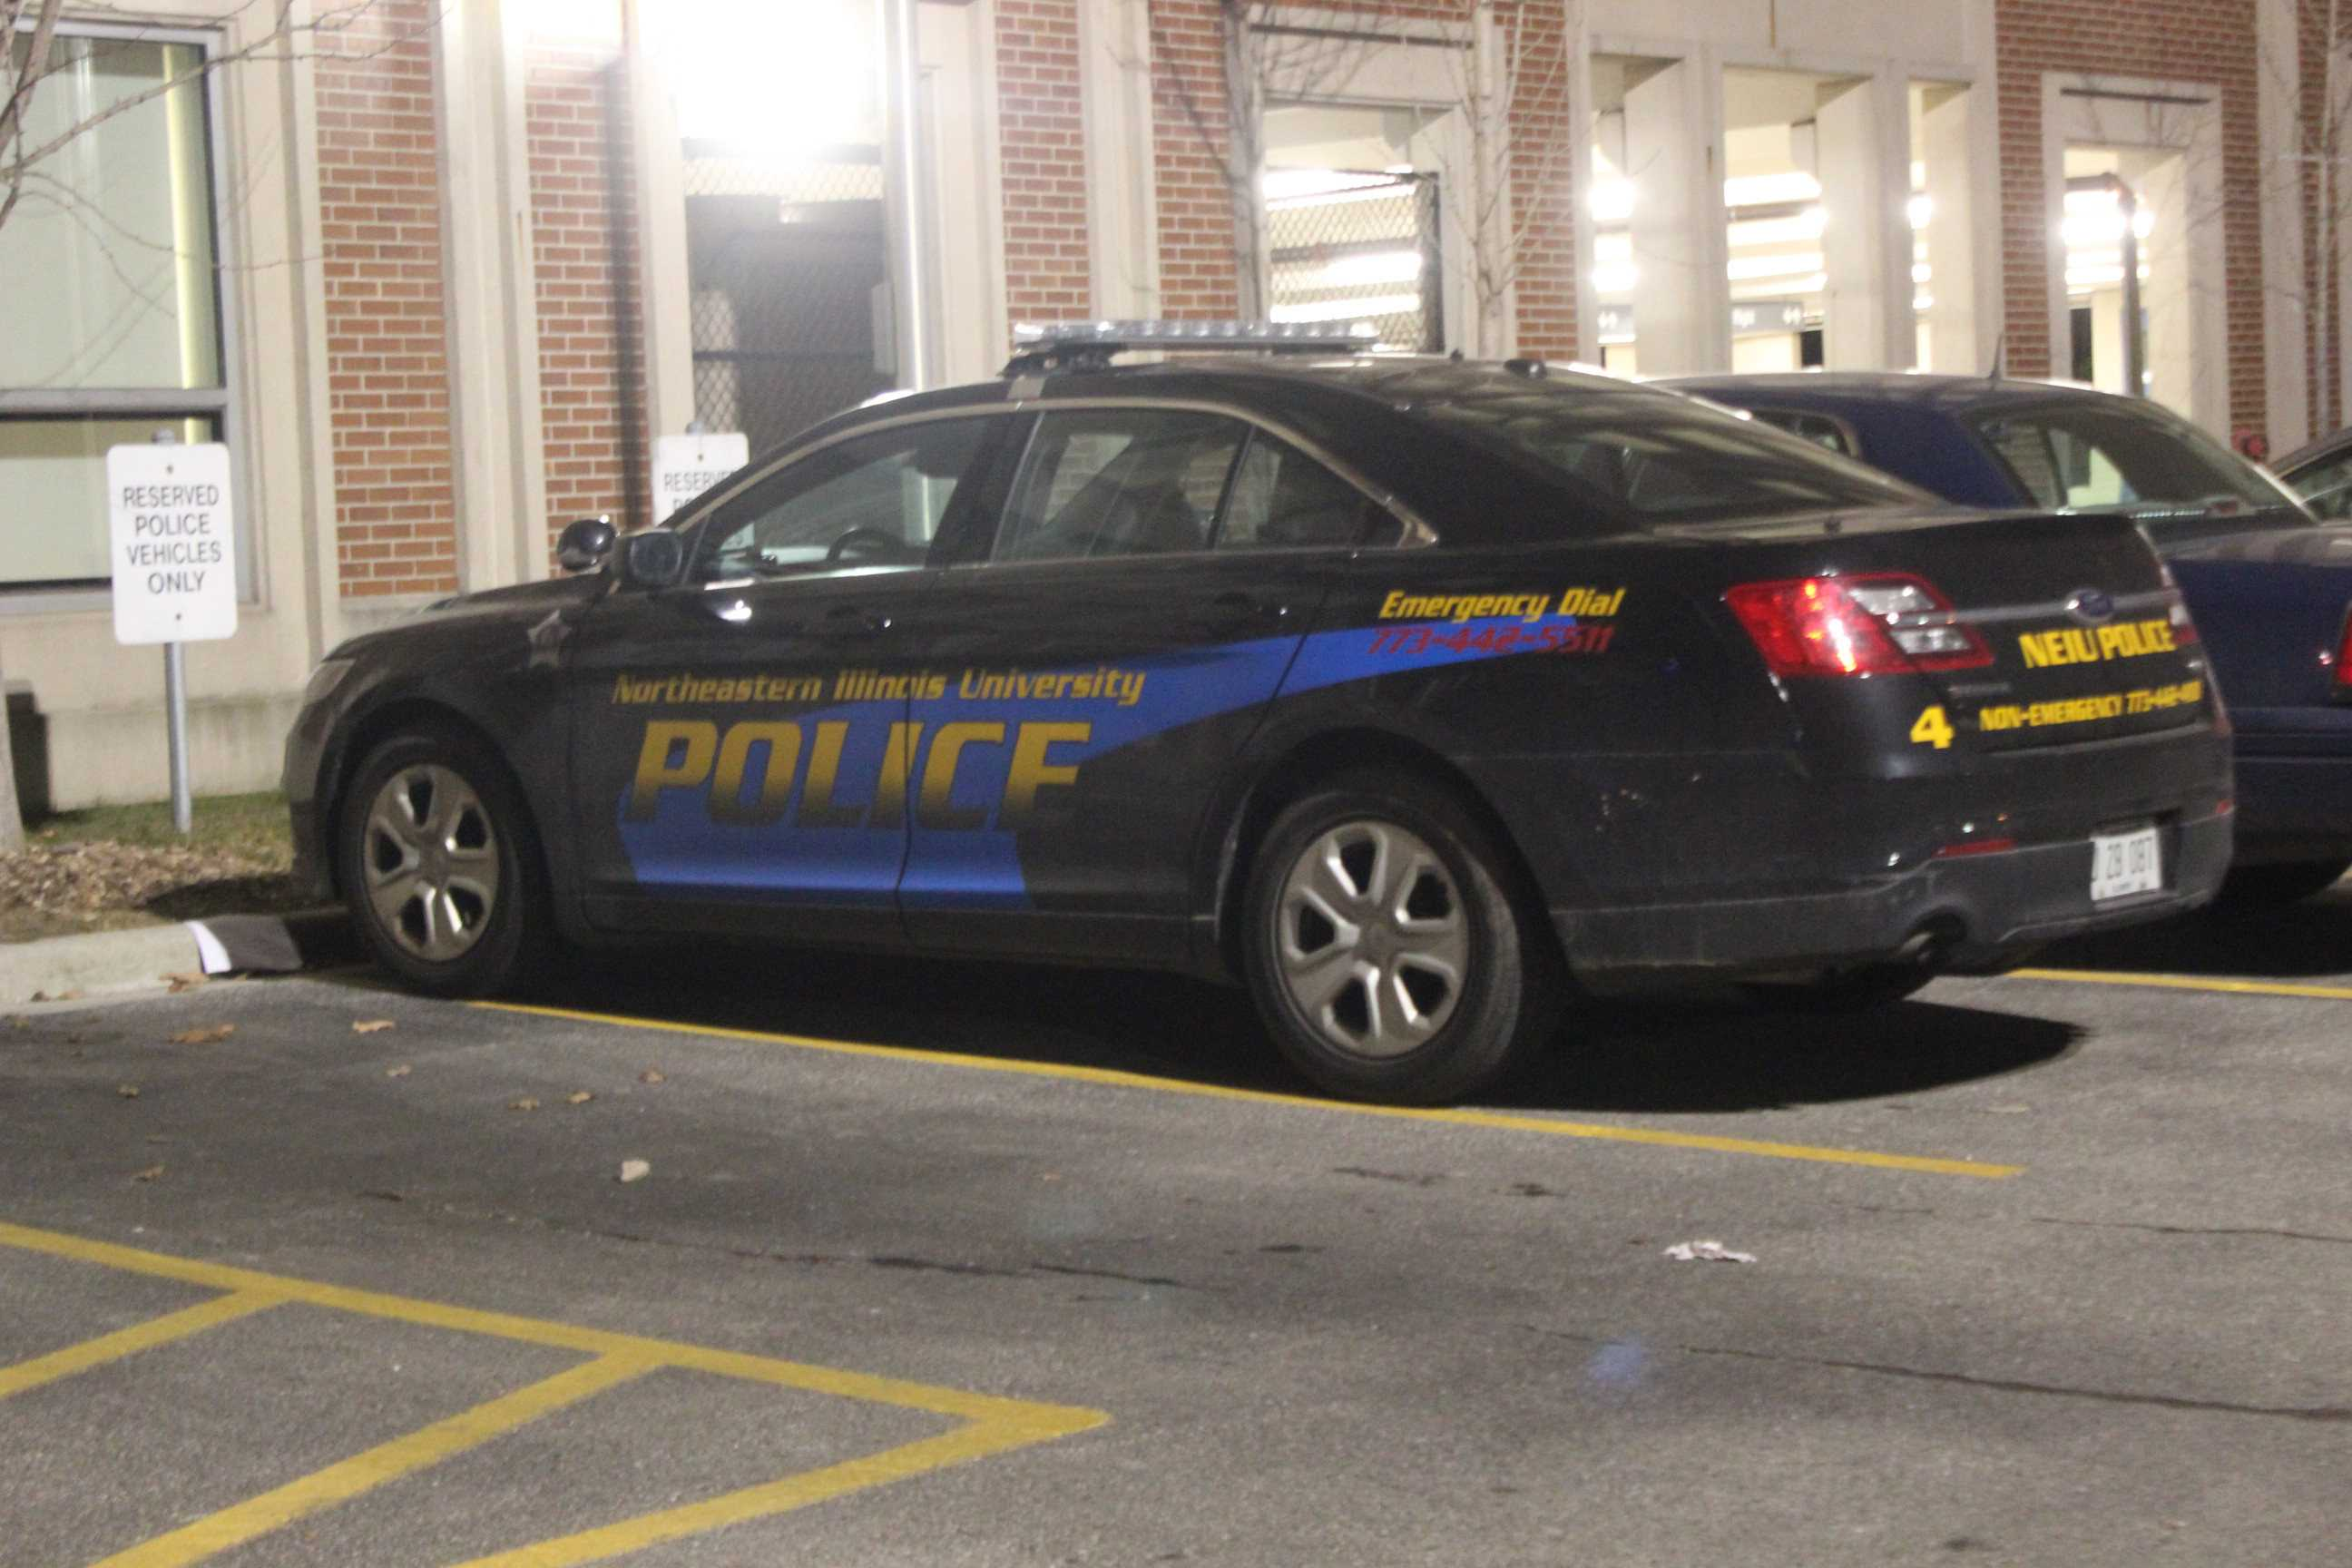 Students can request a police escort to their vehicle when leaving campus late at night.